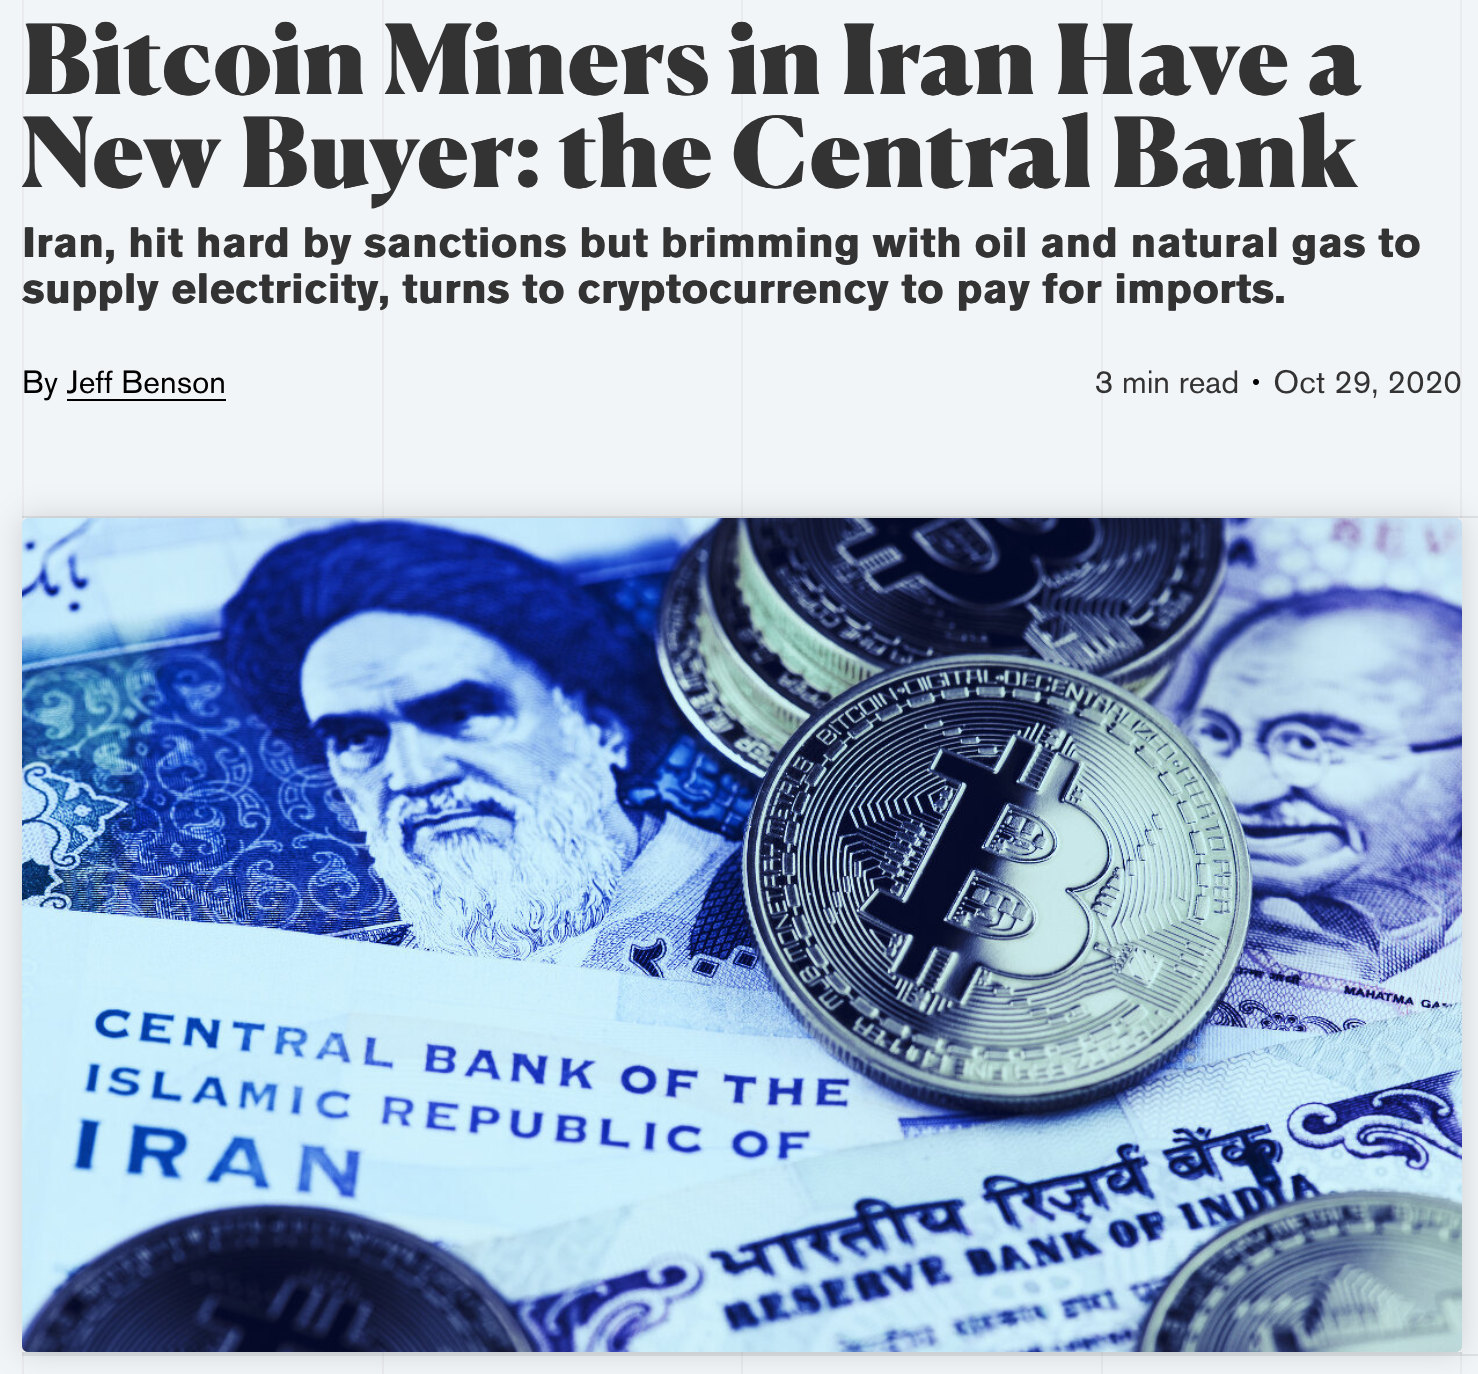 Iran's Central Banks Acquires Bitcoin Even Though Lagarde Says Central Banks Will Not Hold Bitcoin